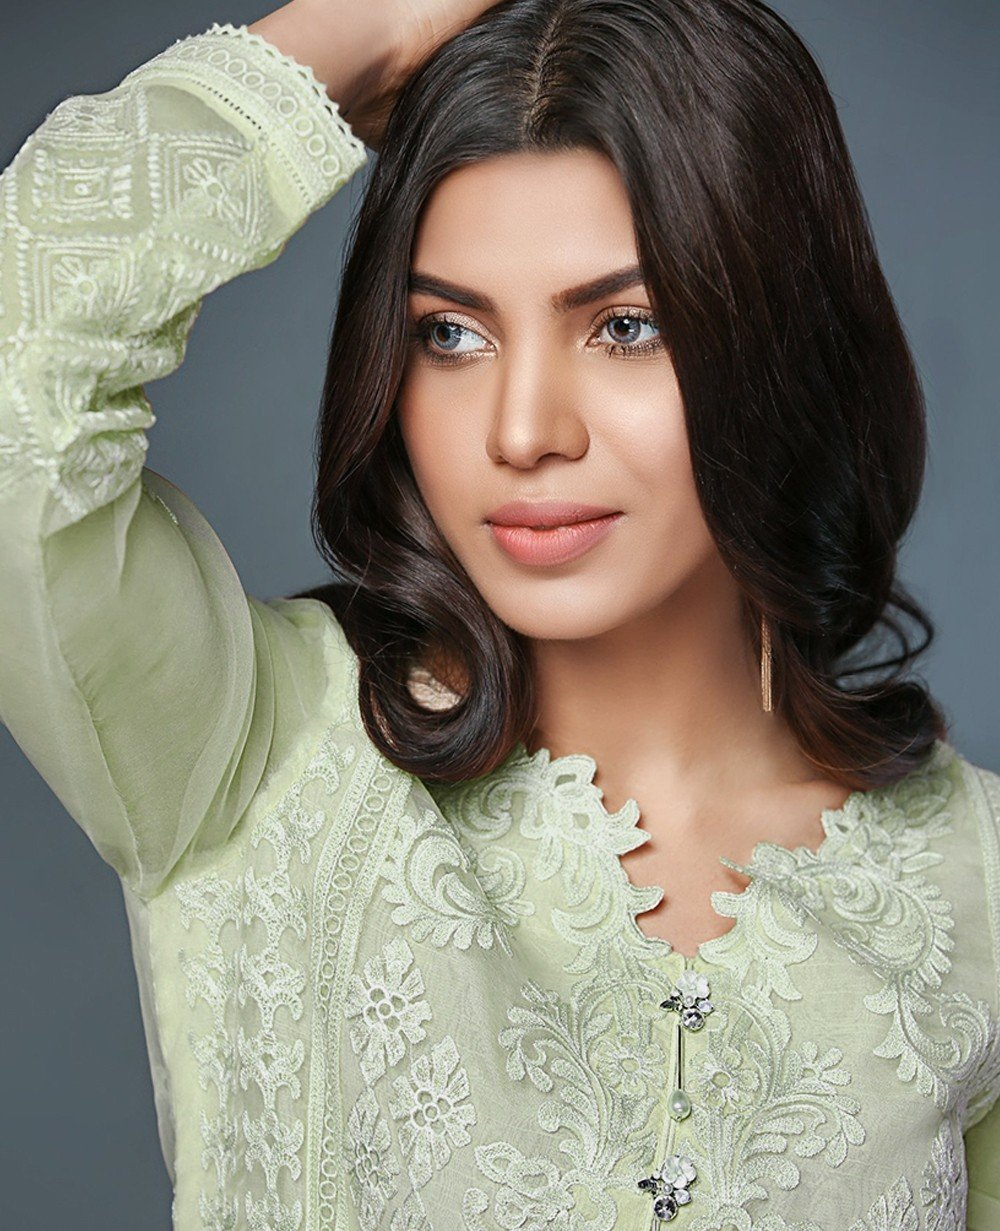 Xenia Formals Pure Chiffon Designer Spot On B - Embroidered kameez with Chiffon dupatta